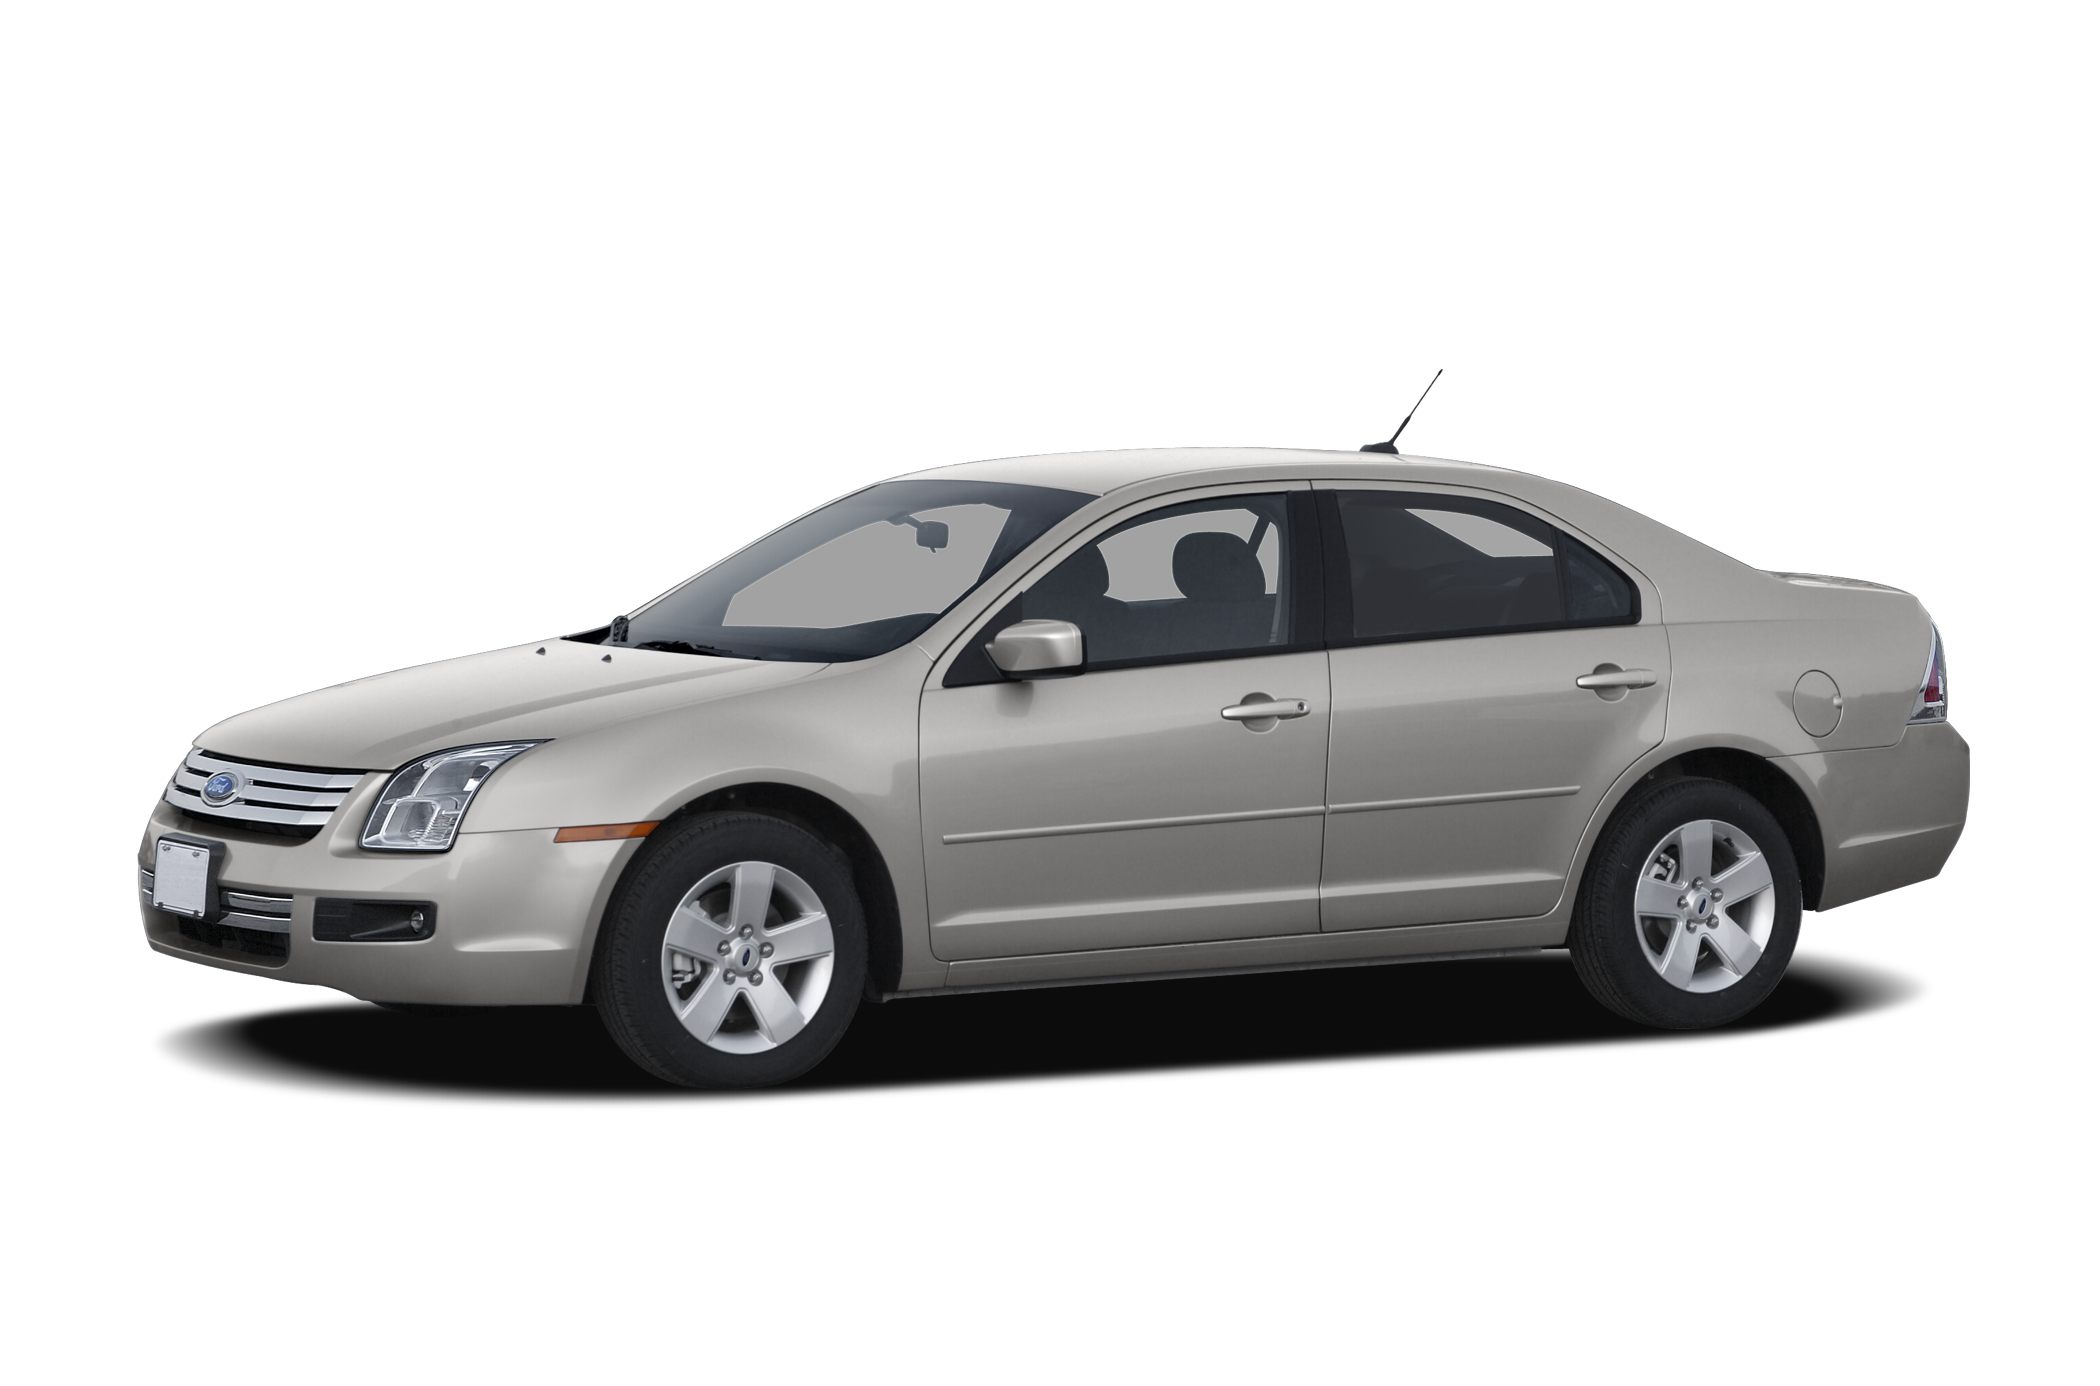 2008 Ford Fusion SE Sedan for sale in Cincinnati for $3,988 with 210,092 miles